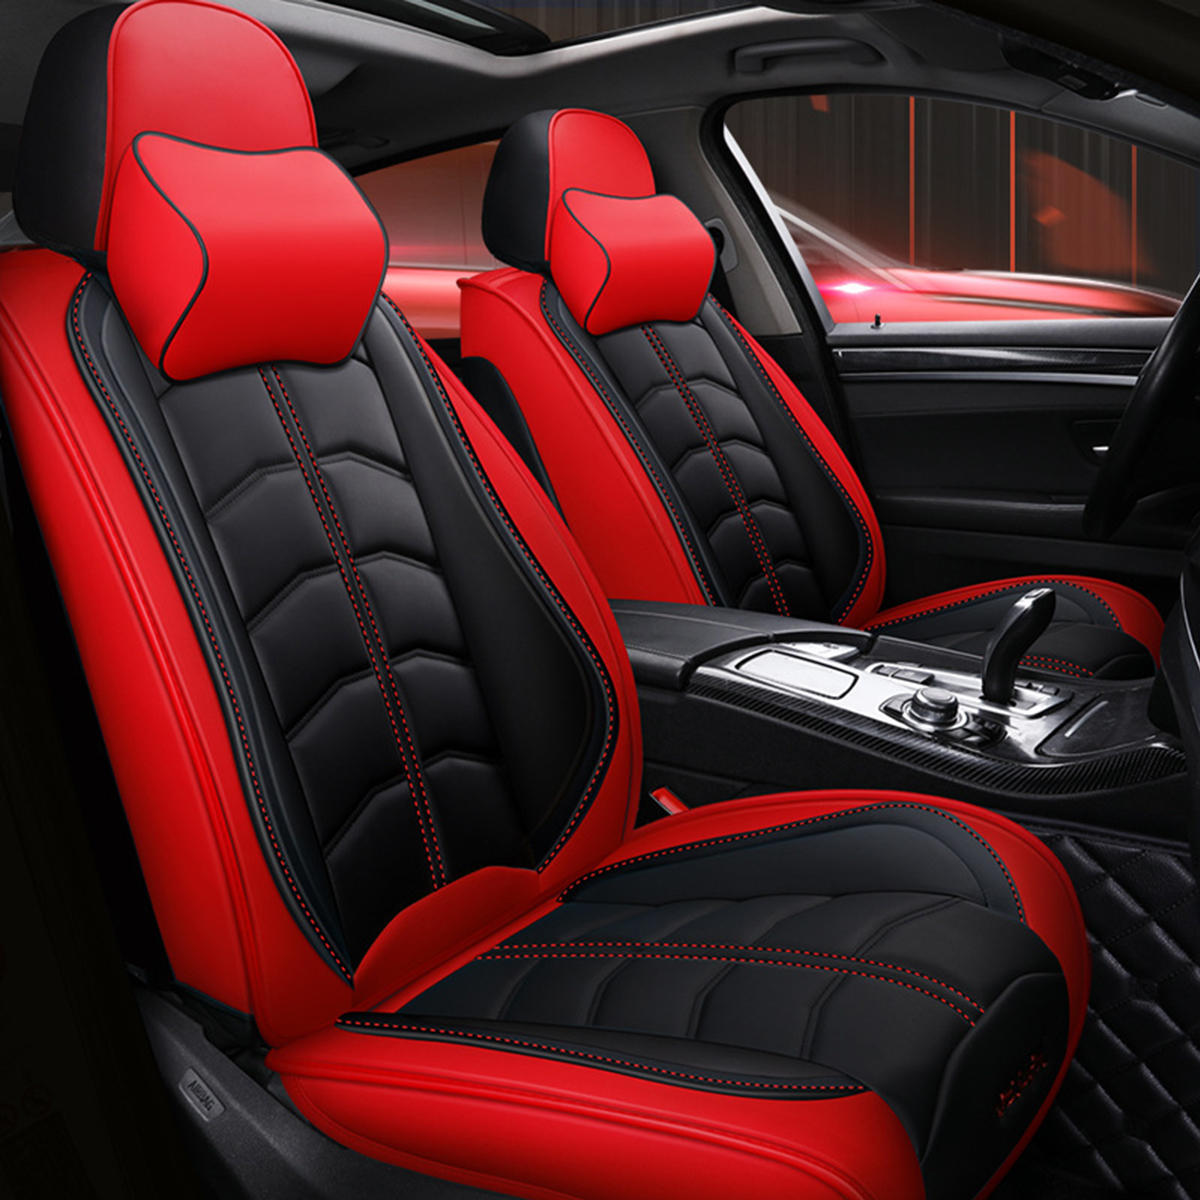 Universal Deluxe 5 Seat Car Leather Seat Front Rear Covers Cushion Pillows Sale Banggood Com